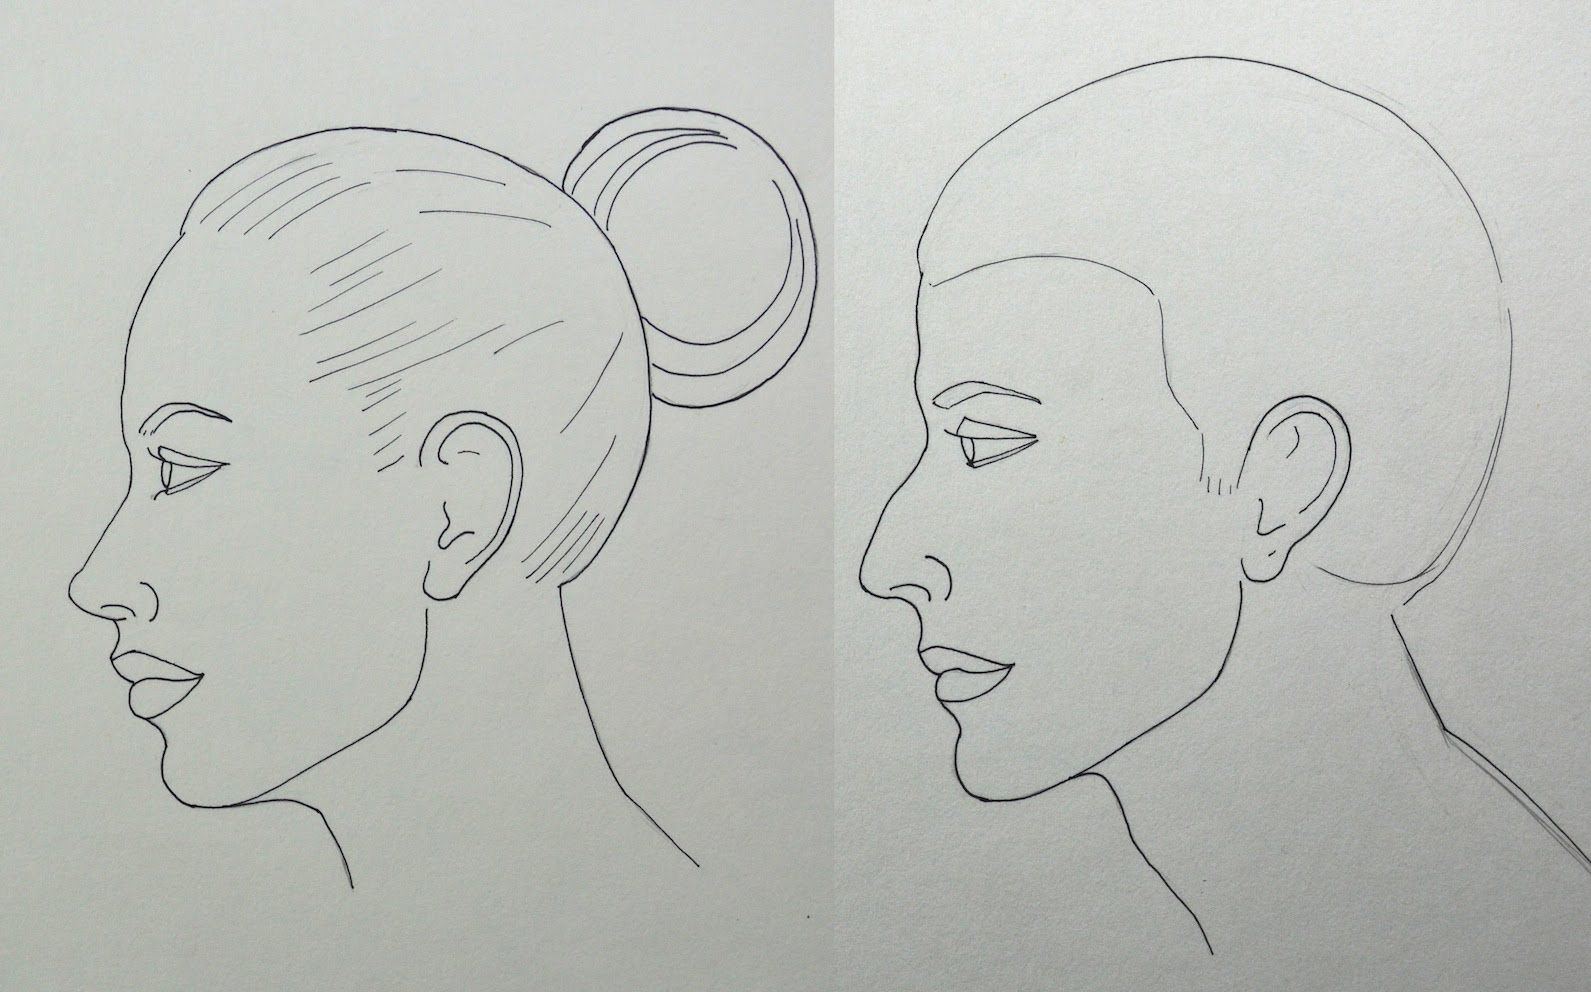 Como Dibujar Un Rostro De Perfil Facilmente Hombre Y Mujer Cara Real Drawings Face Drawing Barbie Drawing